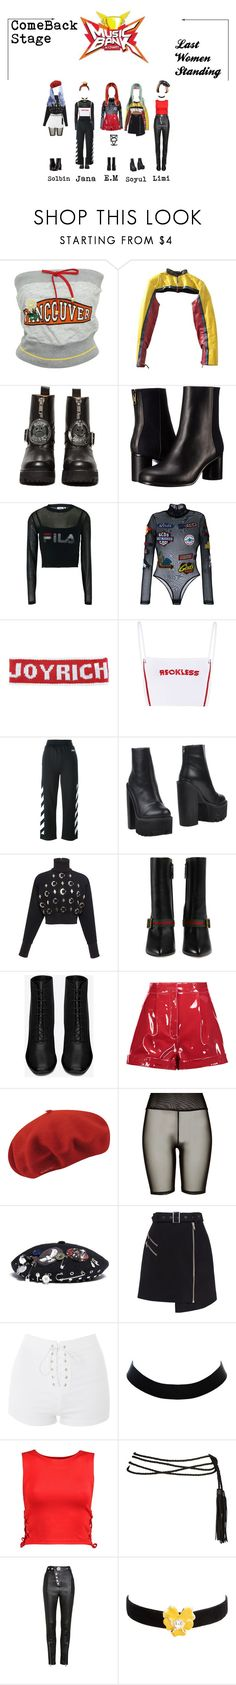 """""""LWS/ Comeback Stage/MB"""" by lws-official ❤ liked on Polyvore featuring D&G, Jean-Paul Gaultier, UNIF, Paul Smith, Fila, GCDS, Off-White, Jeffrey Campbell, David Koma and Gucci"""